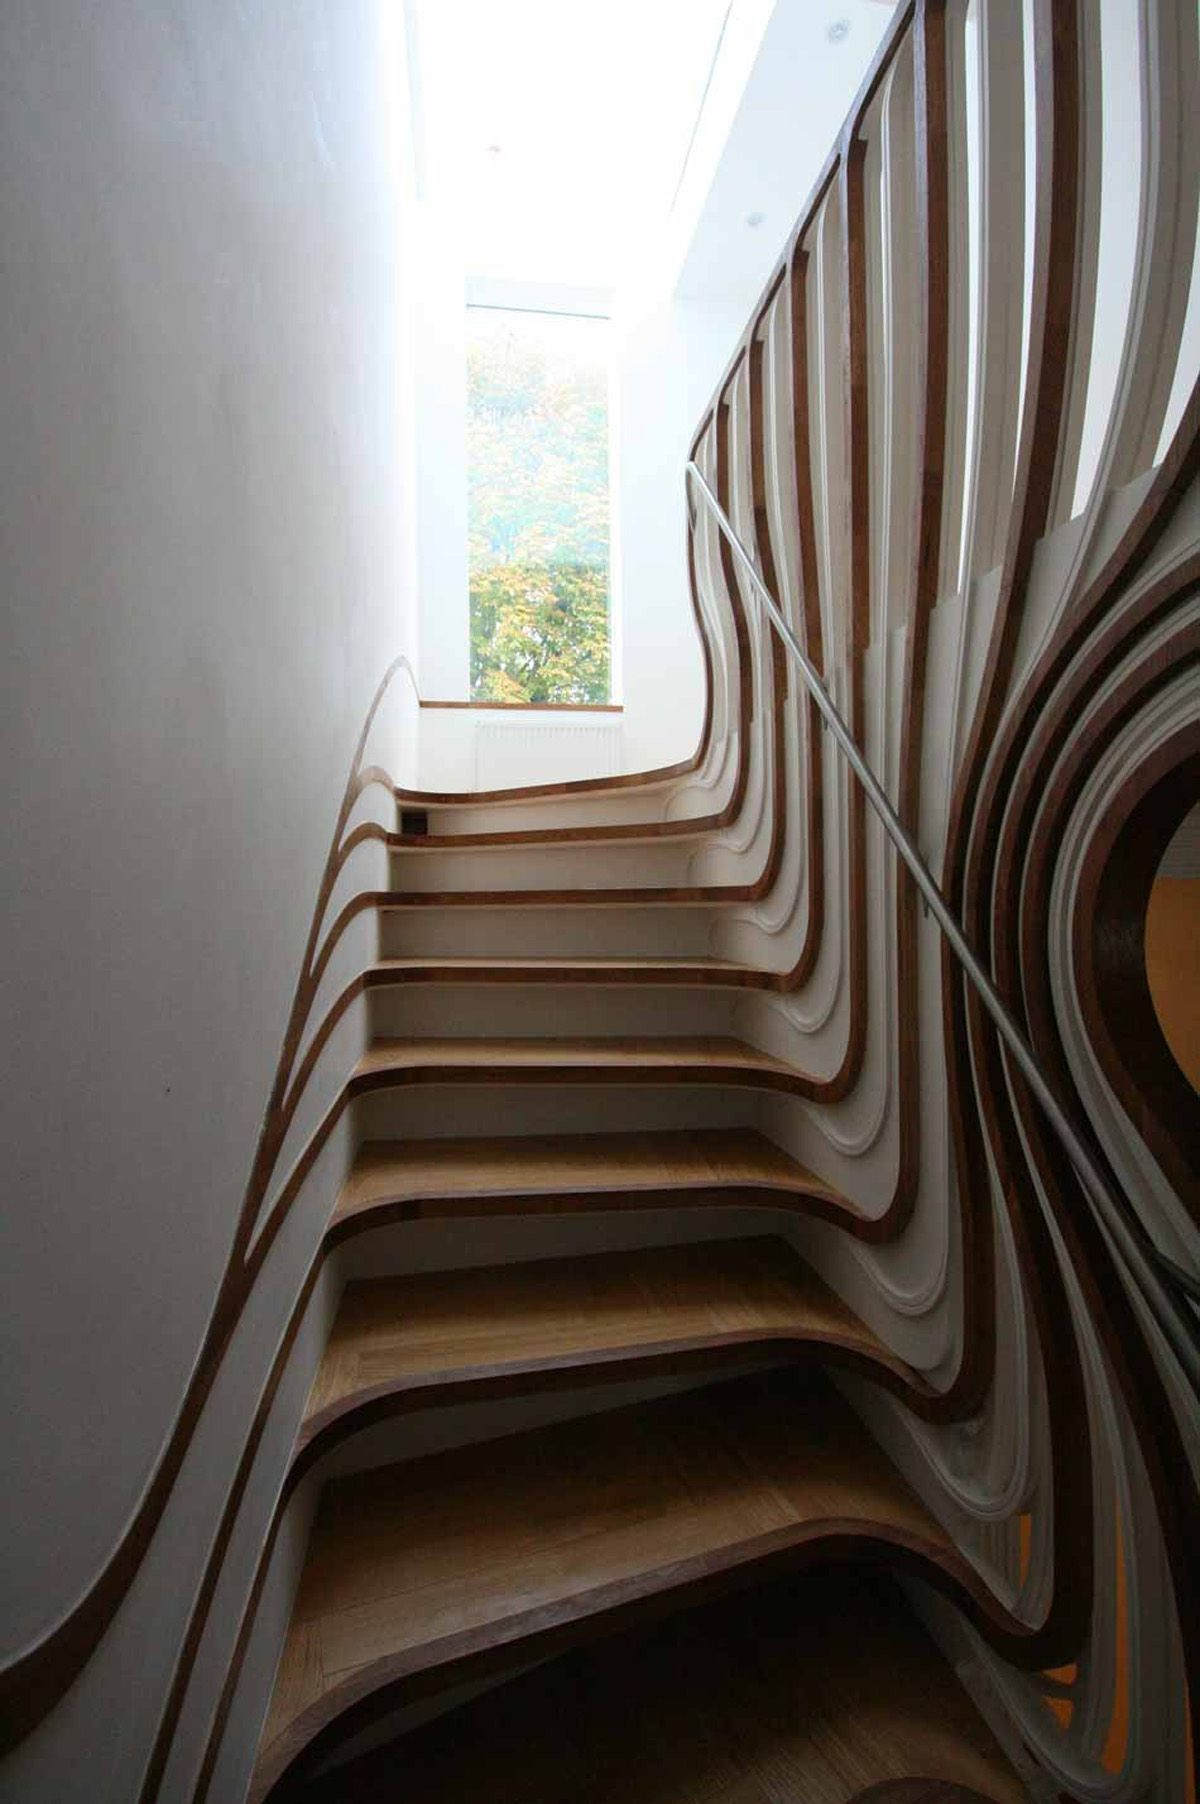 Stair Designs Images Of The Innovative Contemporary Wooden Design Picture 1200x1804px Home And Interior